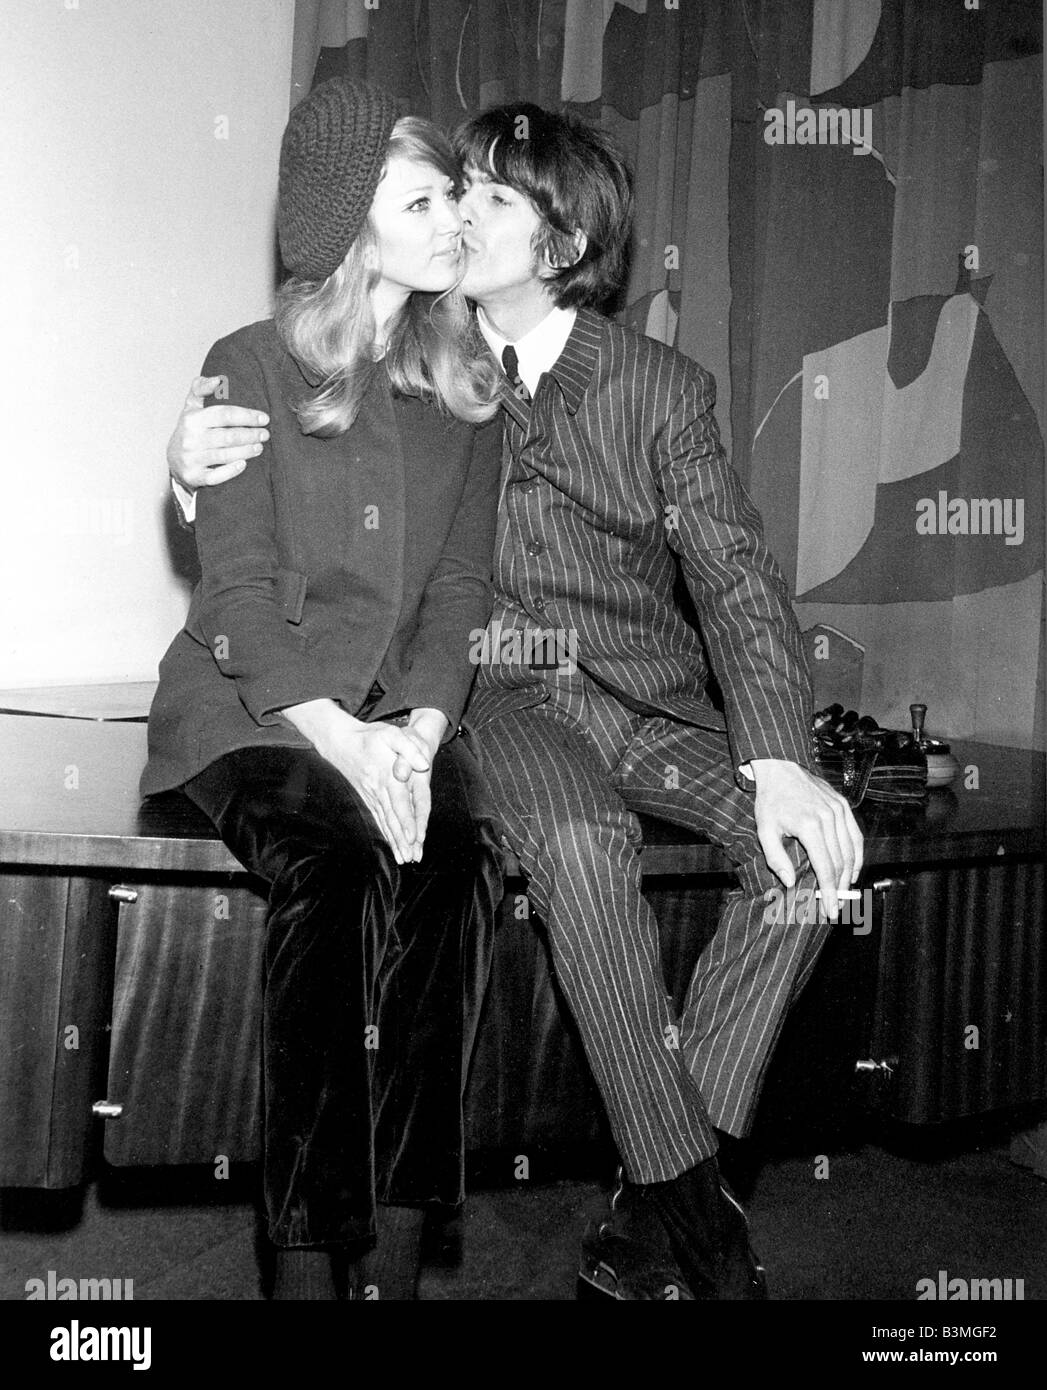 GEORGE HARRISON And Patti Boyd Announce Their Engagement In December 1965